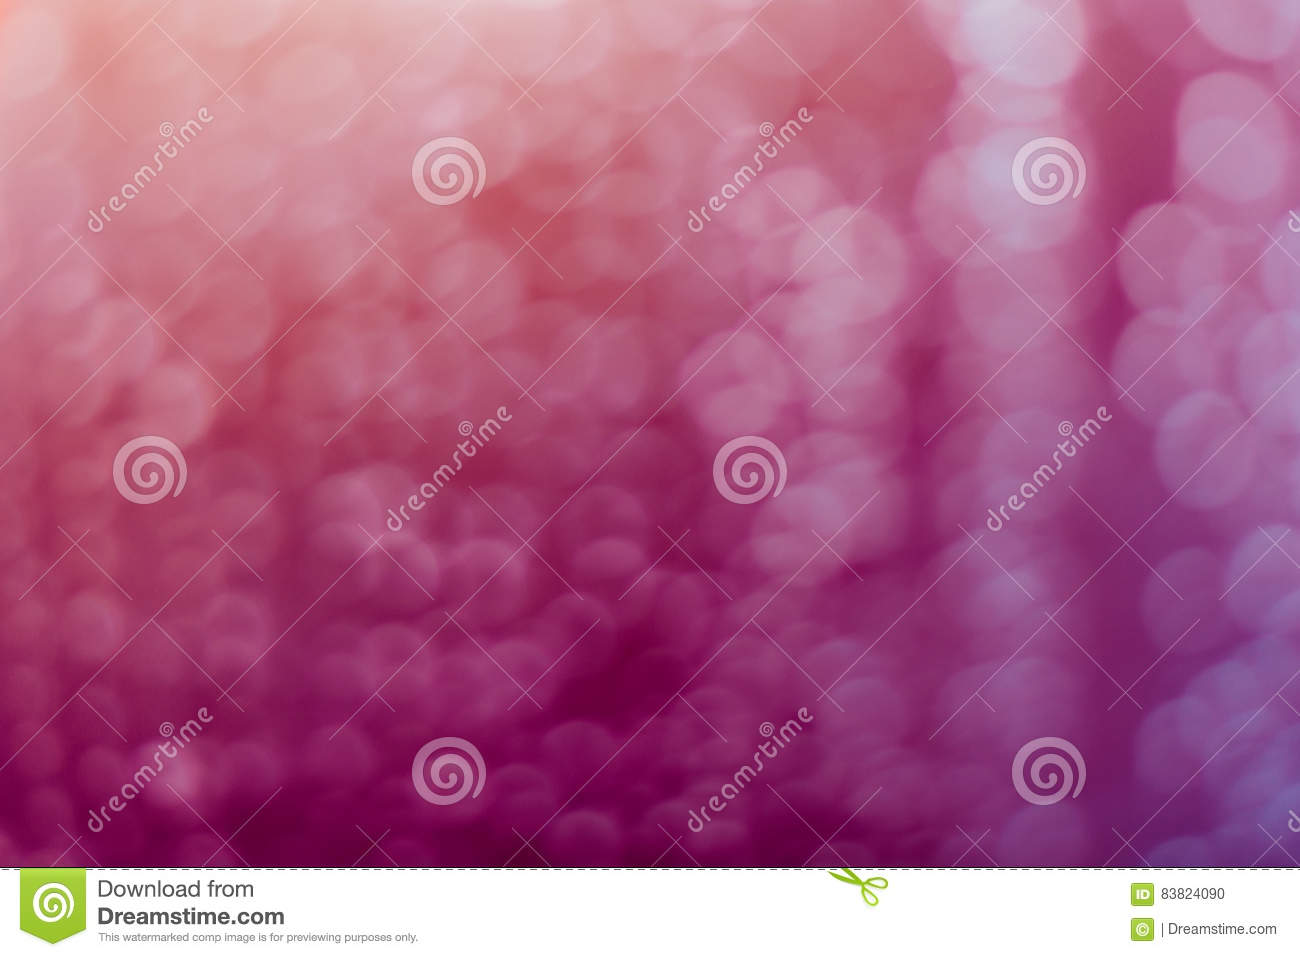 Abstract blurred pink sweet bokeh